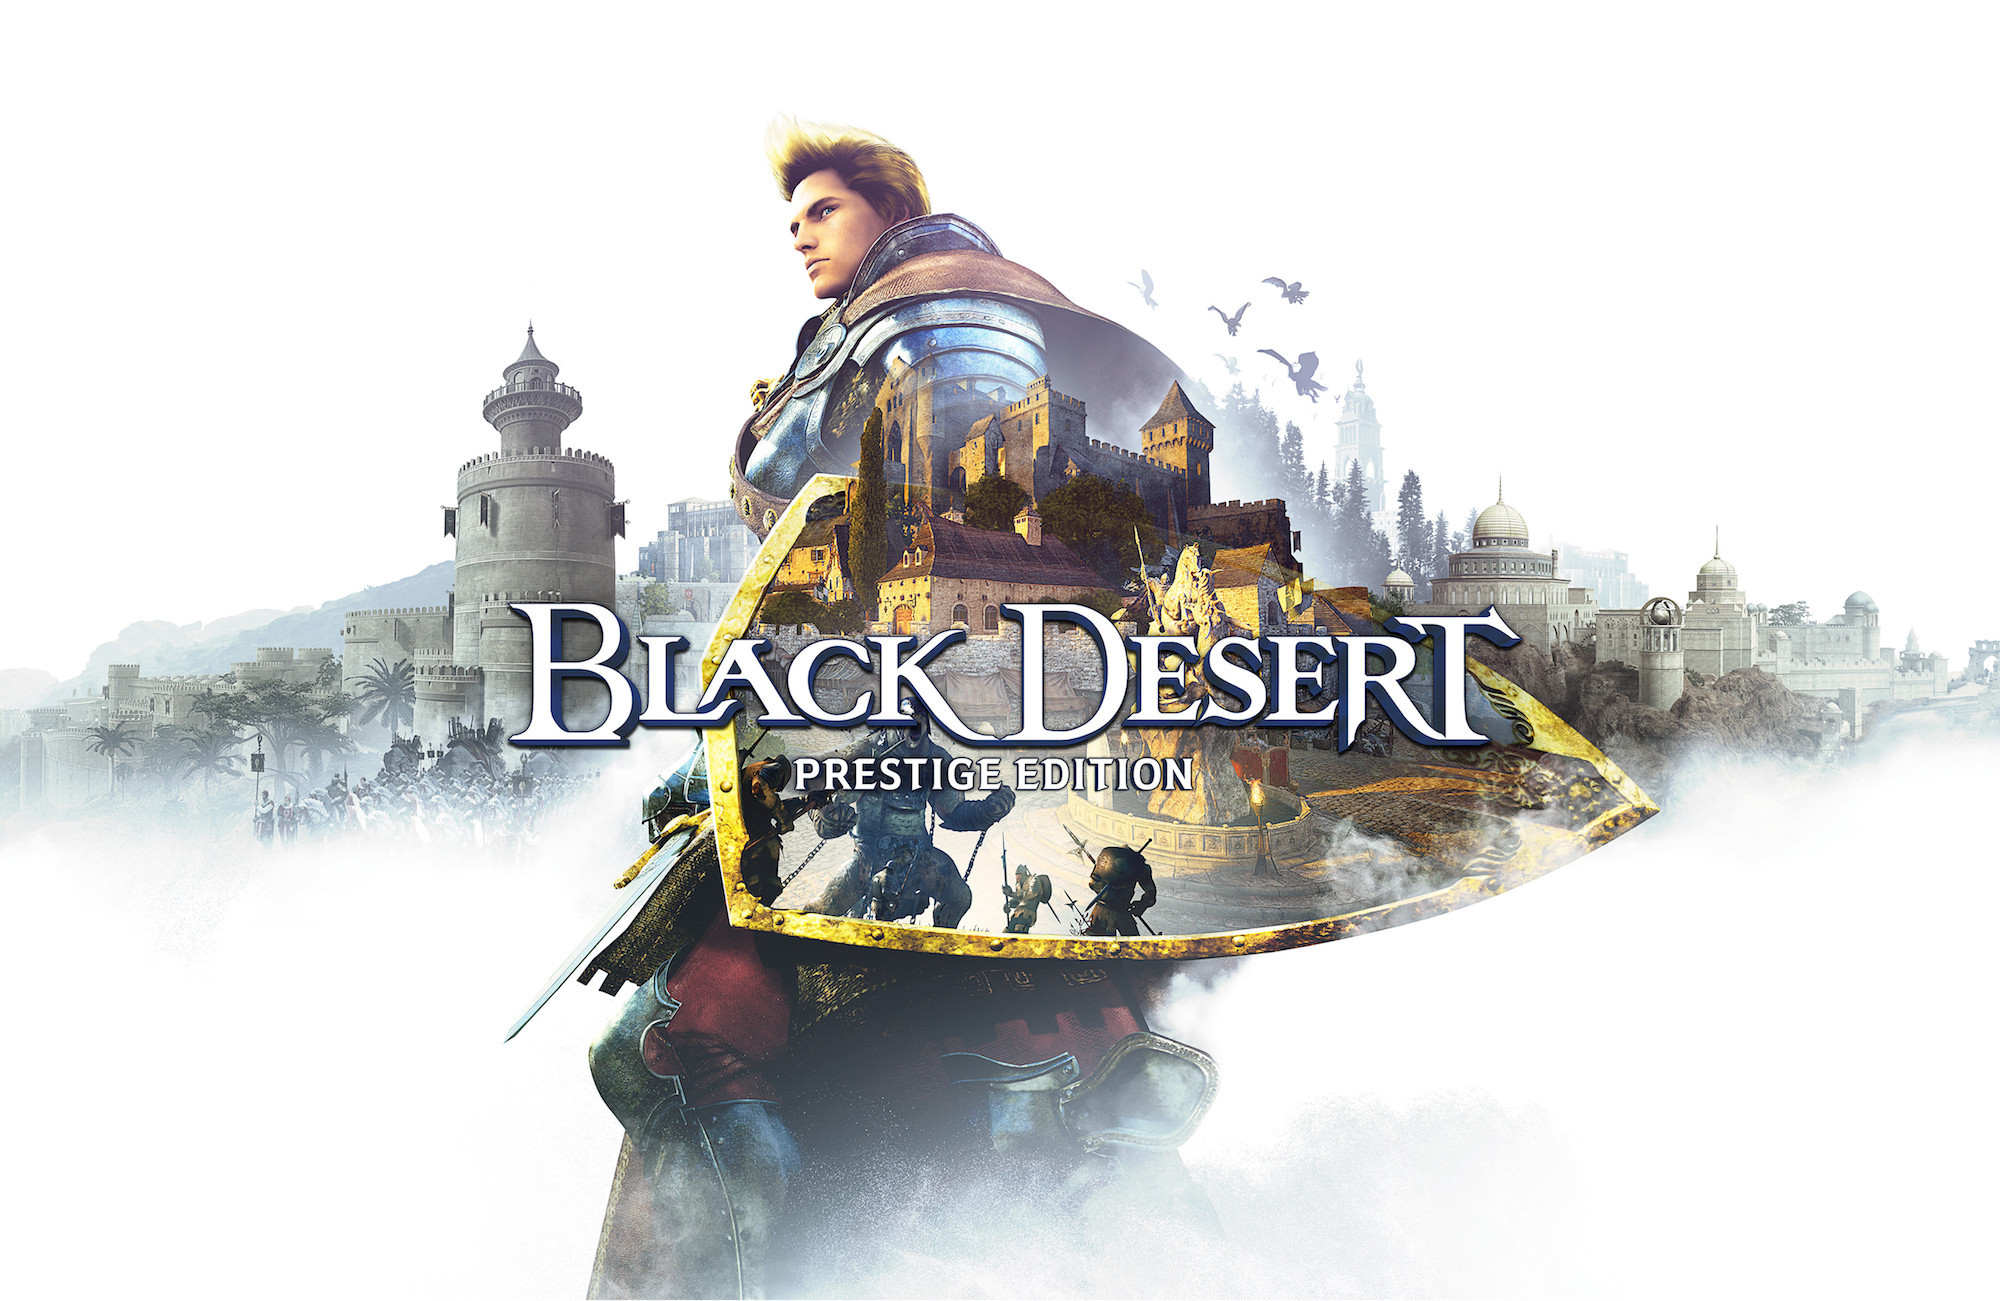 Black Desert Prestige Edition